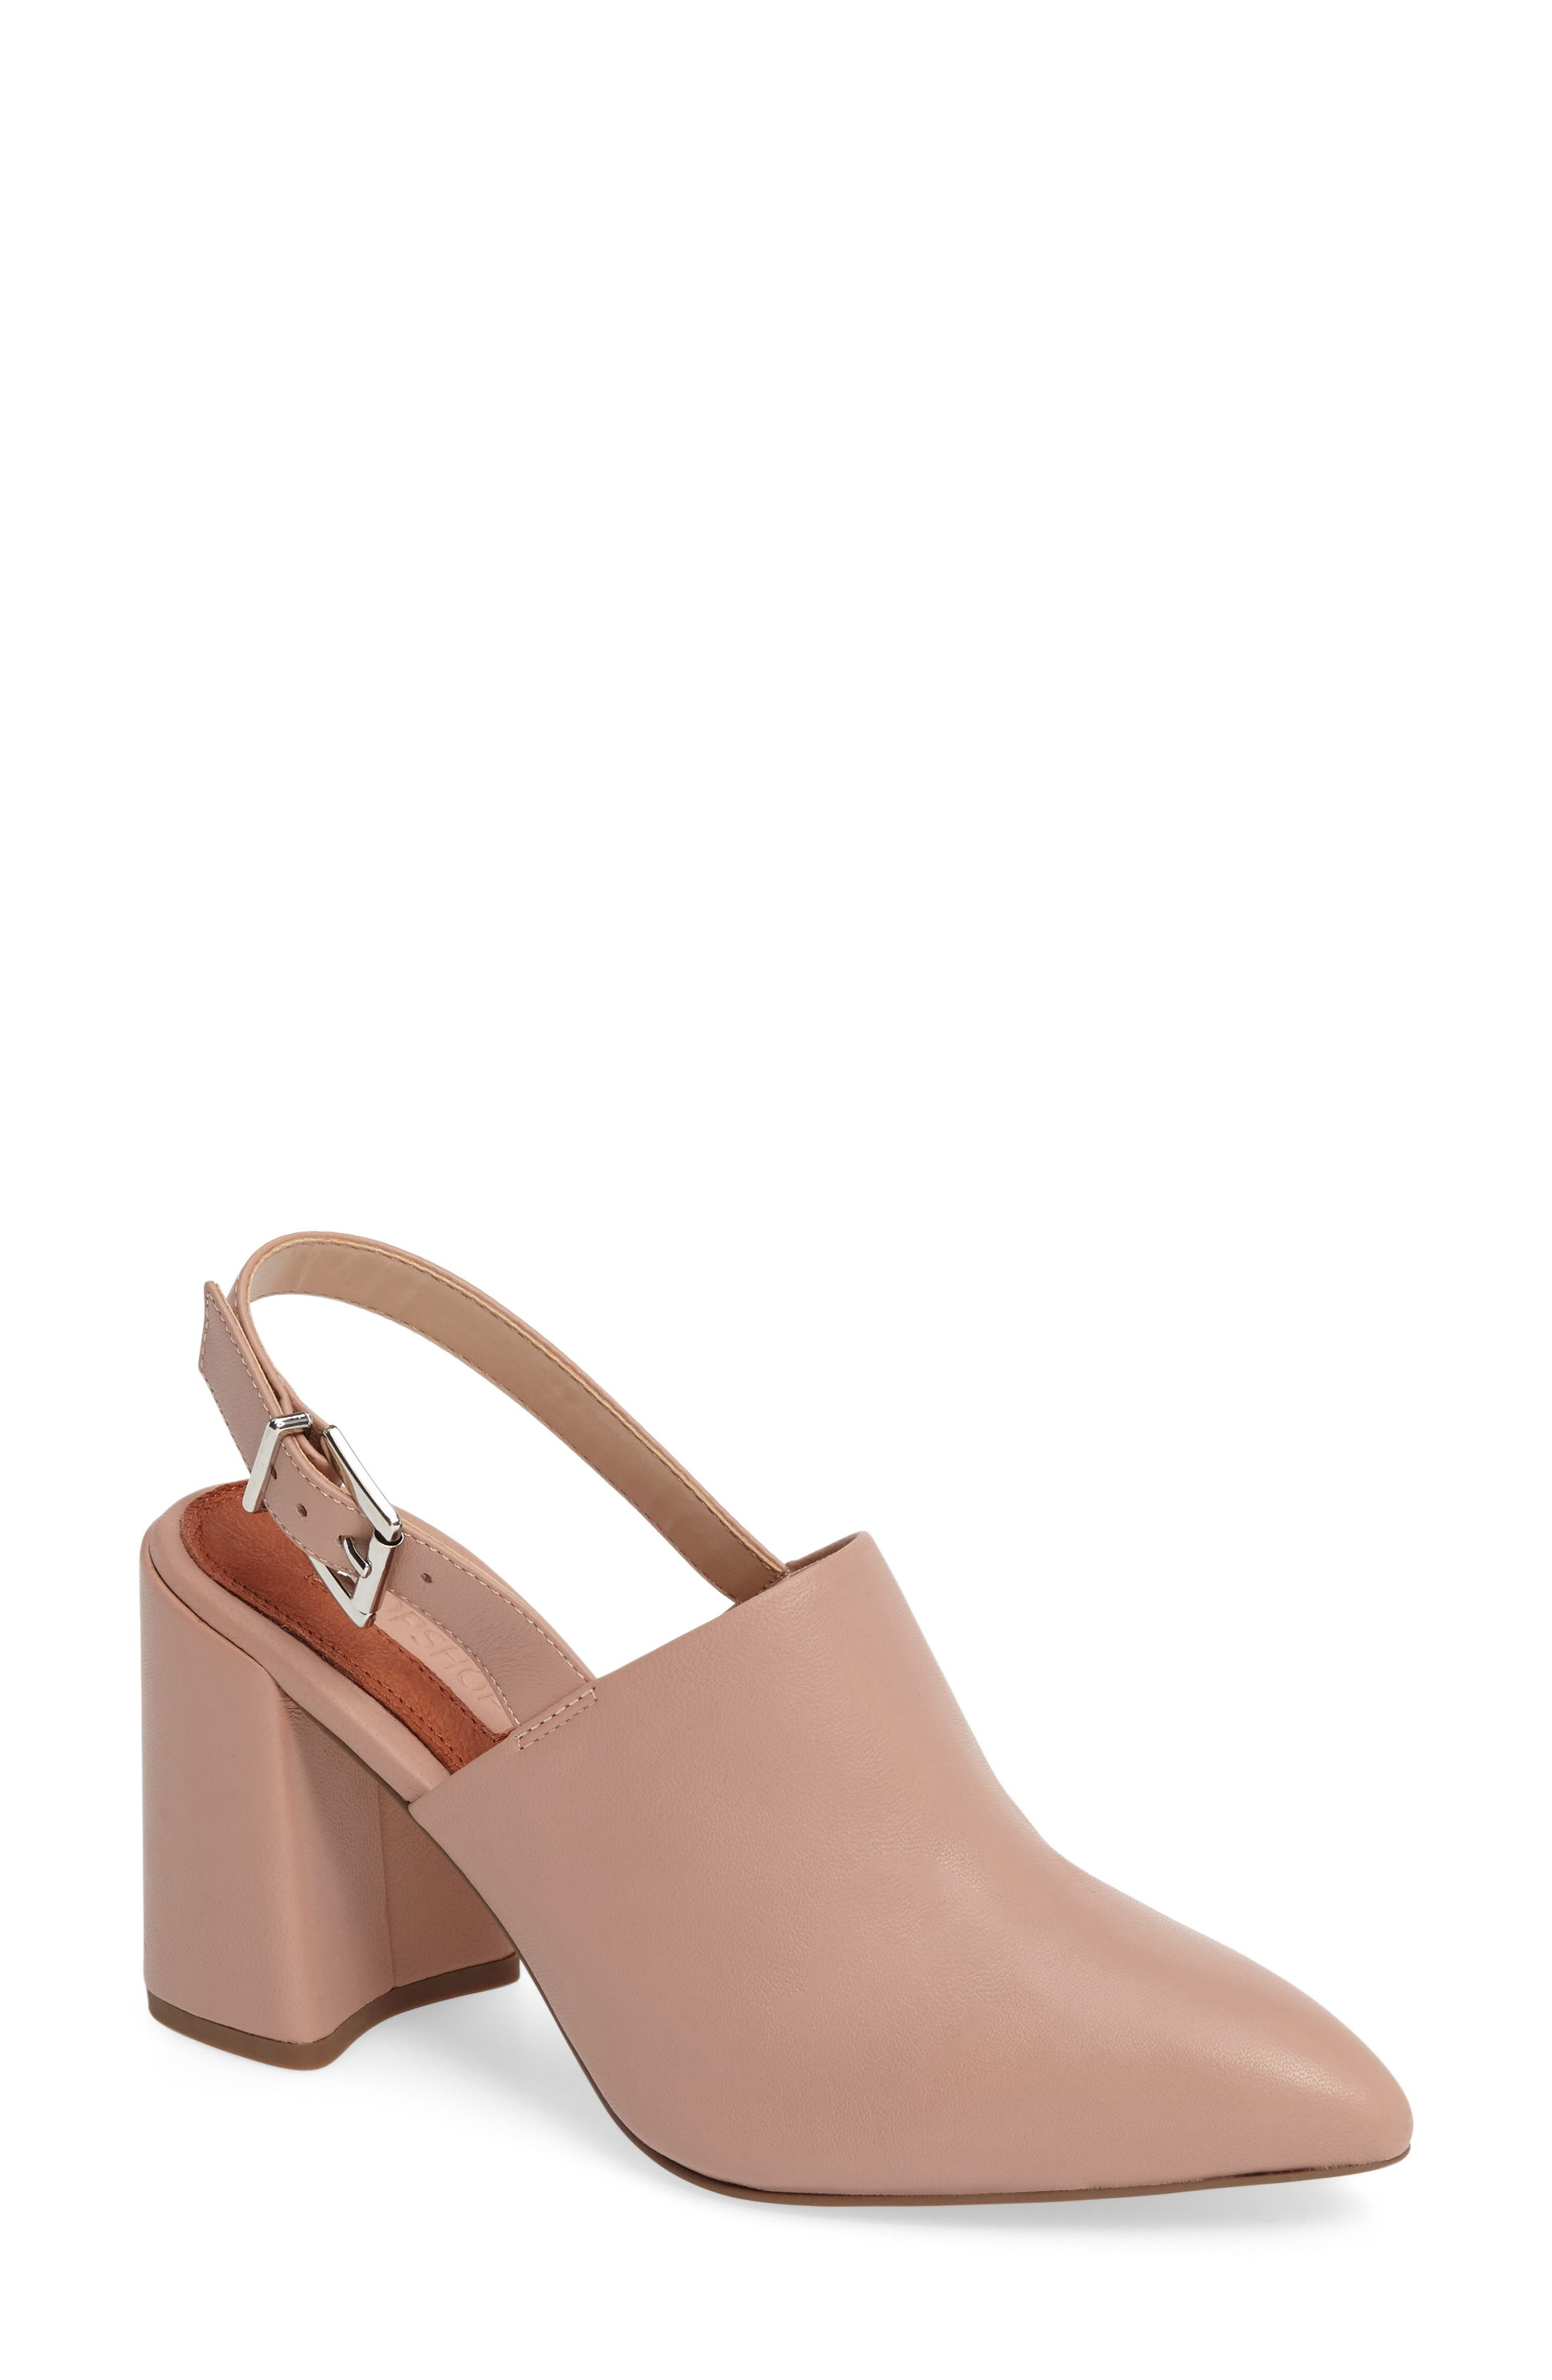 Topshop Women's Shoes | Nordstrom